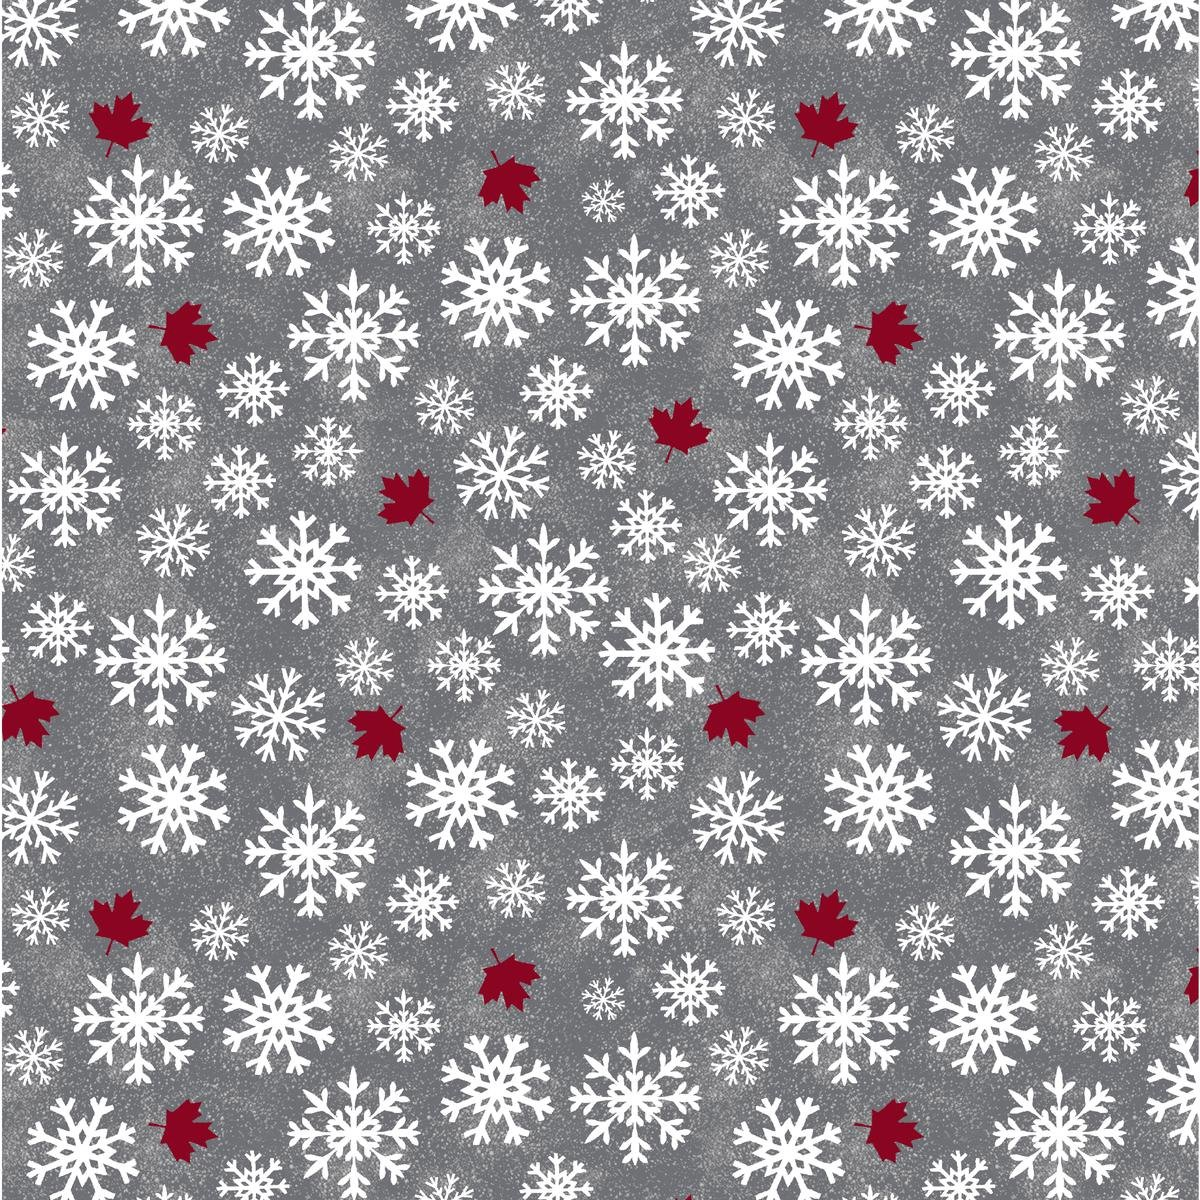 Canadian Christmas CC4 Canadian Fabric by Windham